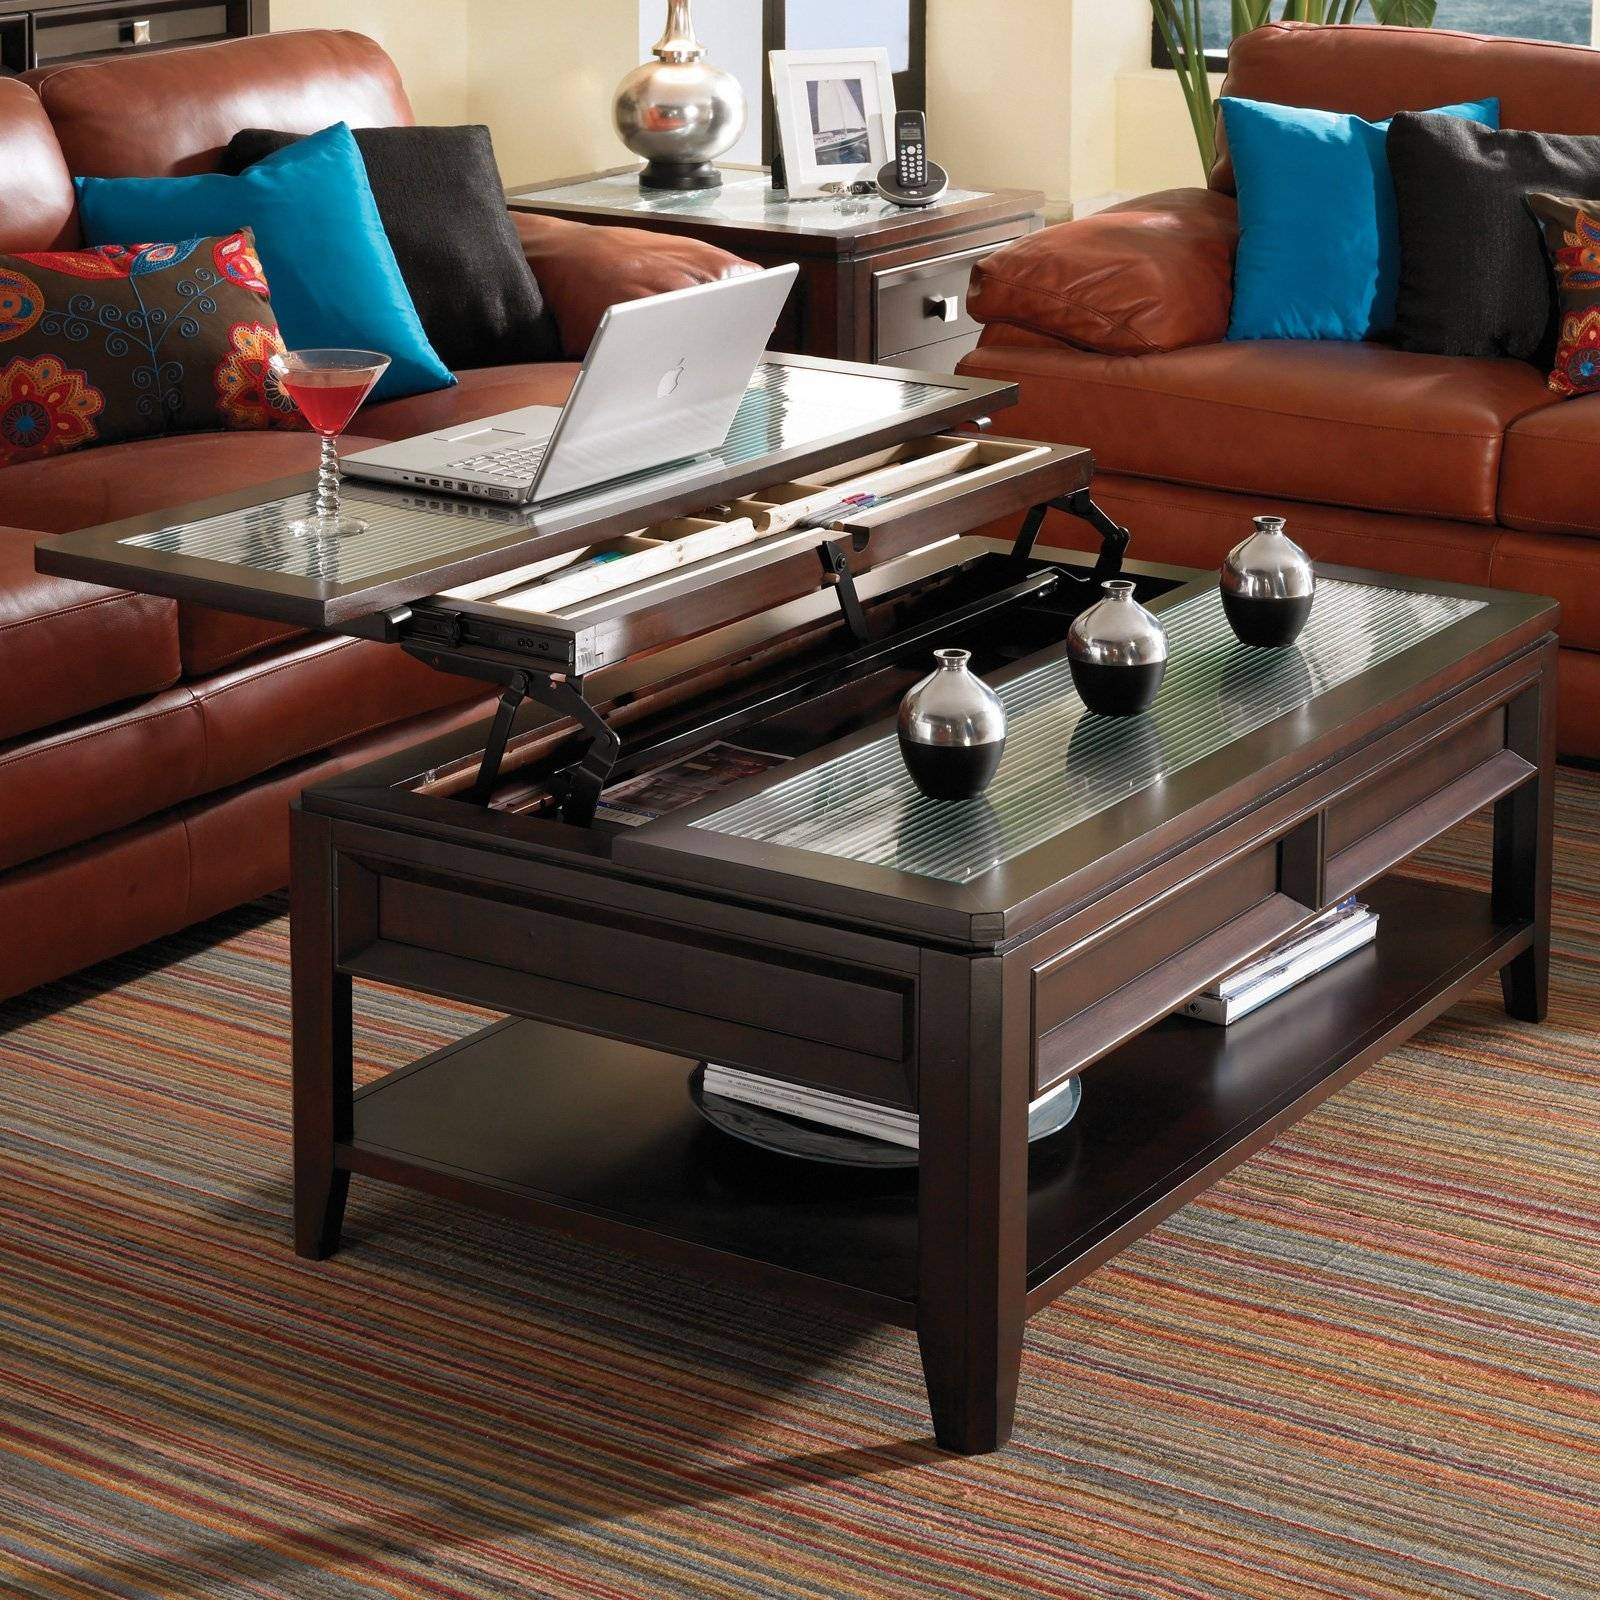 Black Coffee Table With Lift Up Top | Coffee Tables Decoration with regard to Coffee Tables With Lift Up Top (Image 6 of 30)